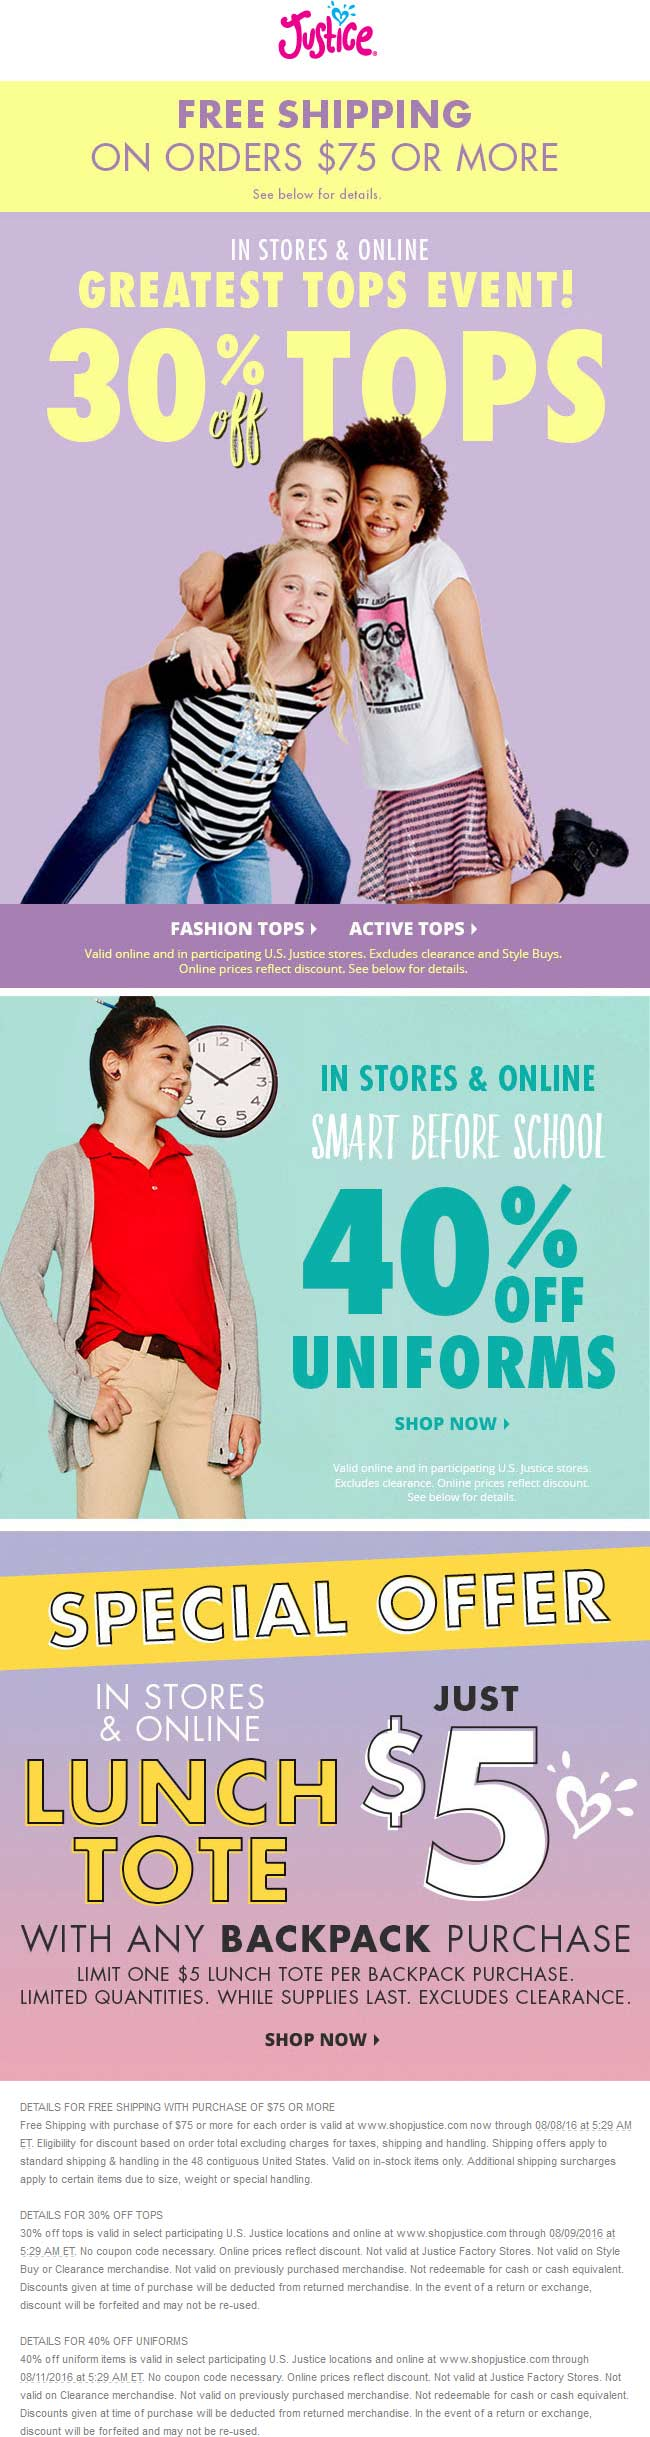 Justice Coupon April 2017 40% off uniforms, 30% off tops at Justice, ditto online